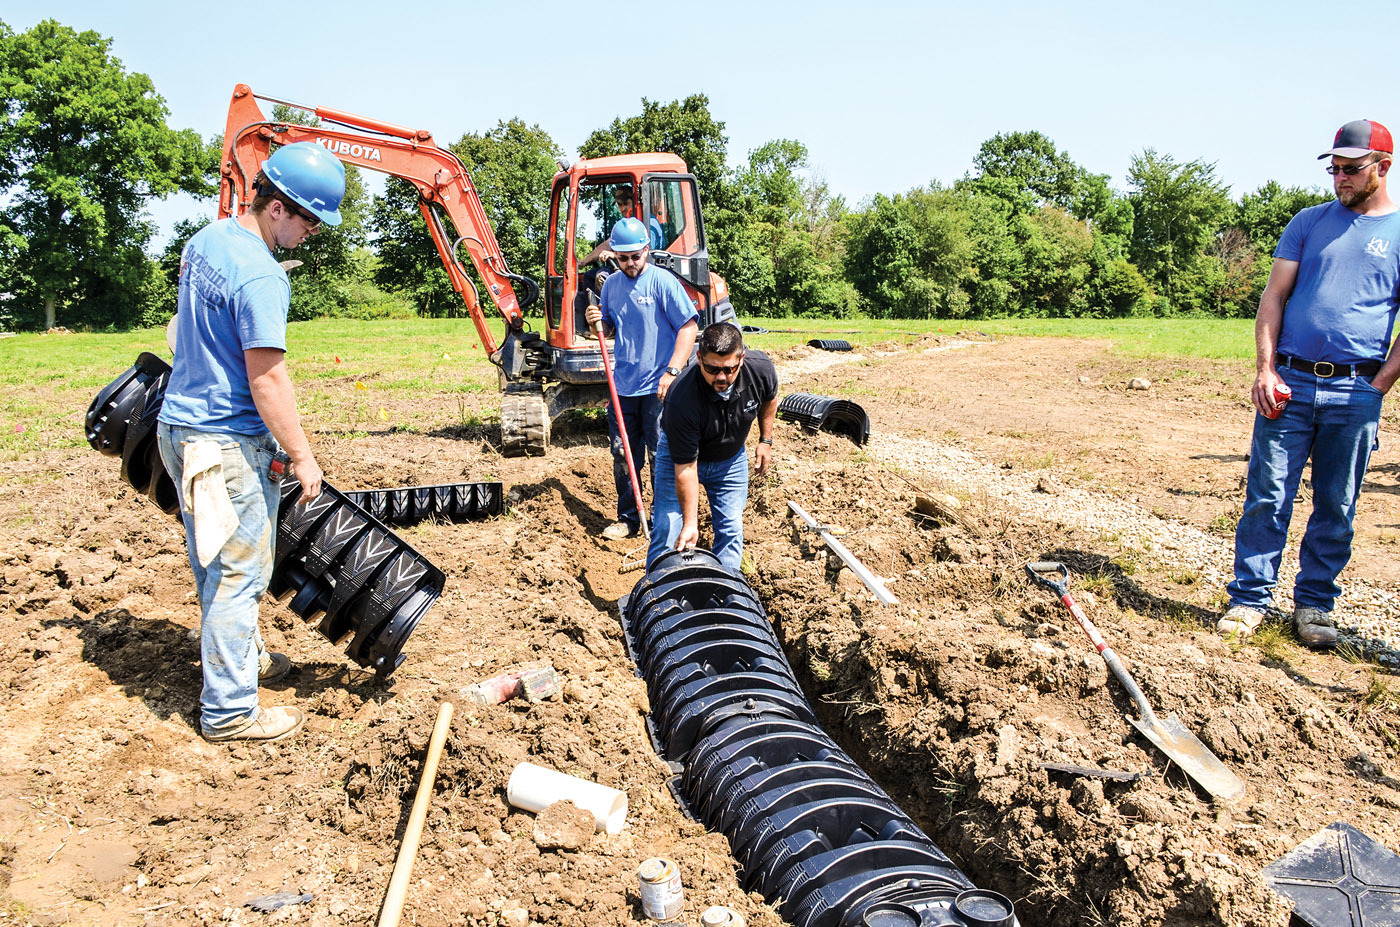 Zak Sherman, of Infiltrator Water Technologies, demonstrates installation of Quick4 low-profile chambers. Also pictured are workers from the DeBord/Benjamin Franklin Plumbing installation team.